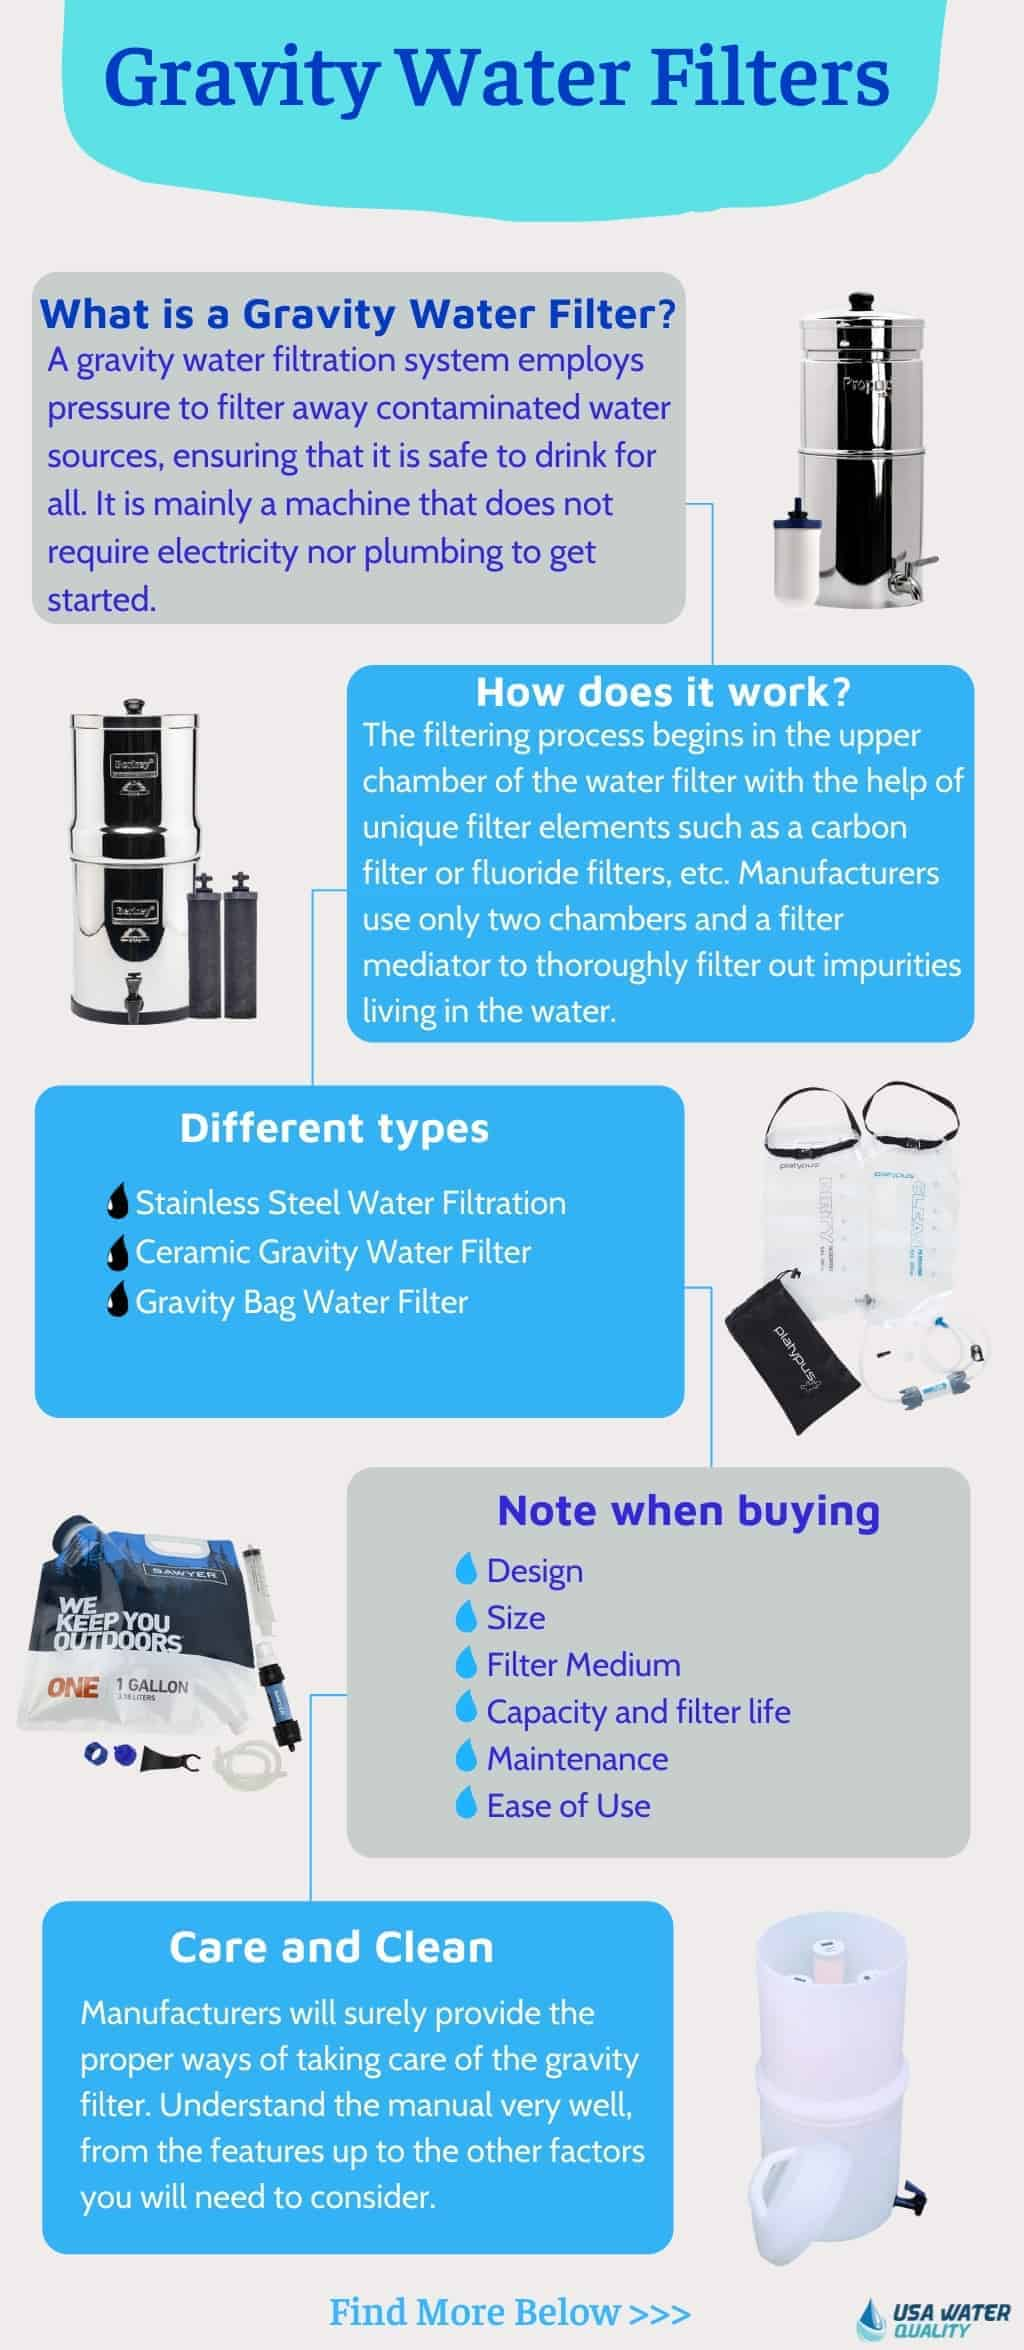 stainless-steel-water-filter